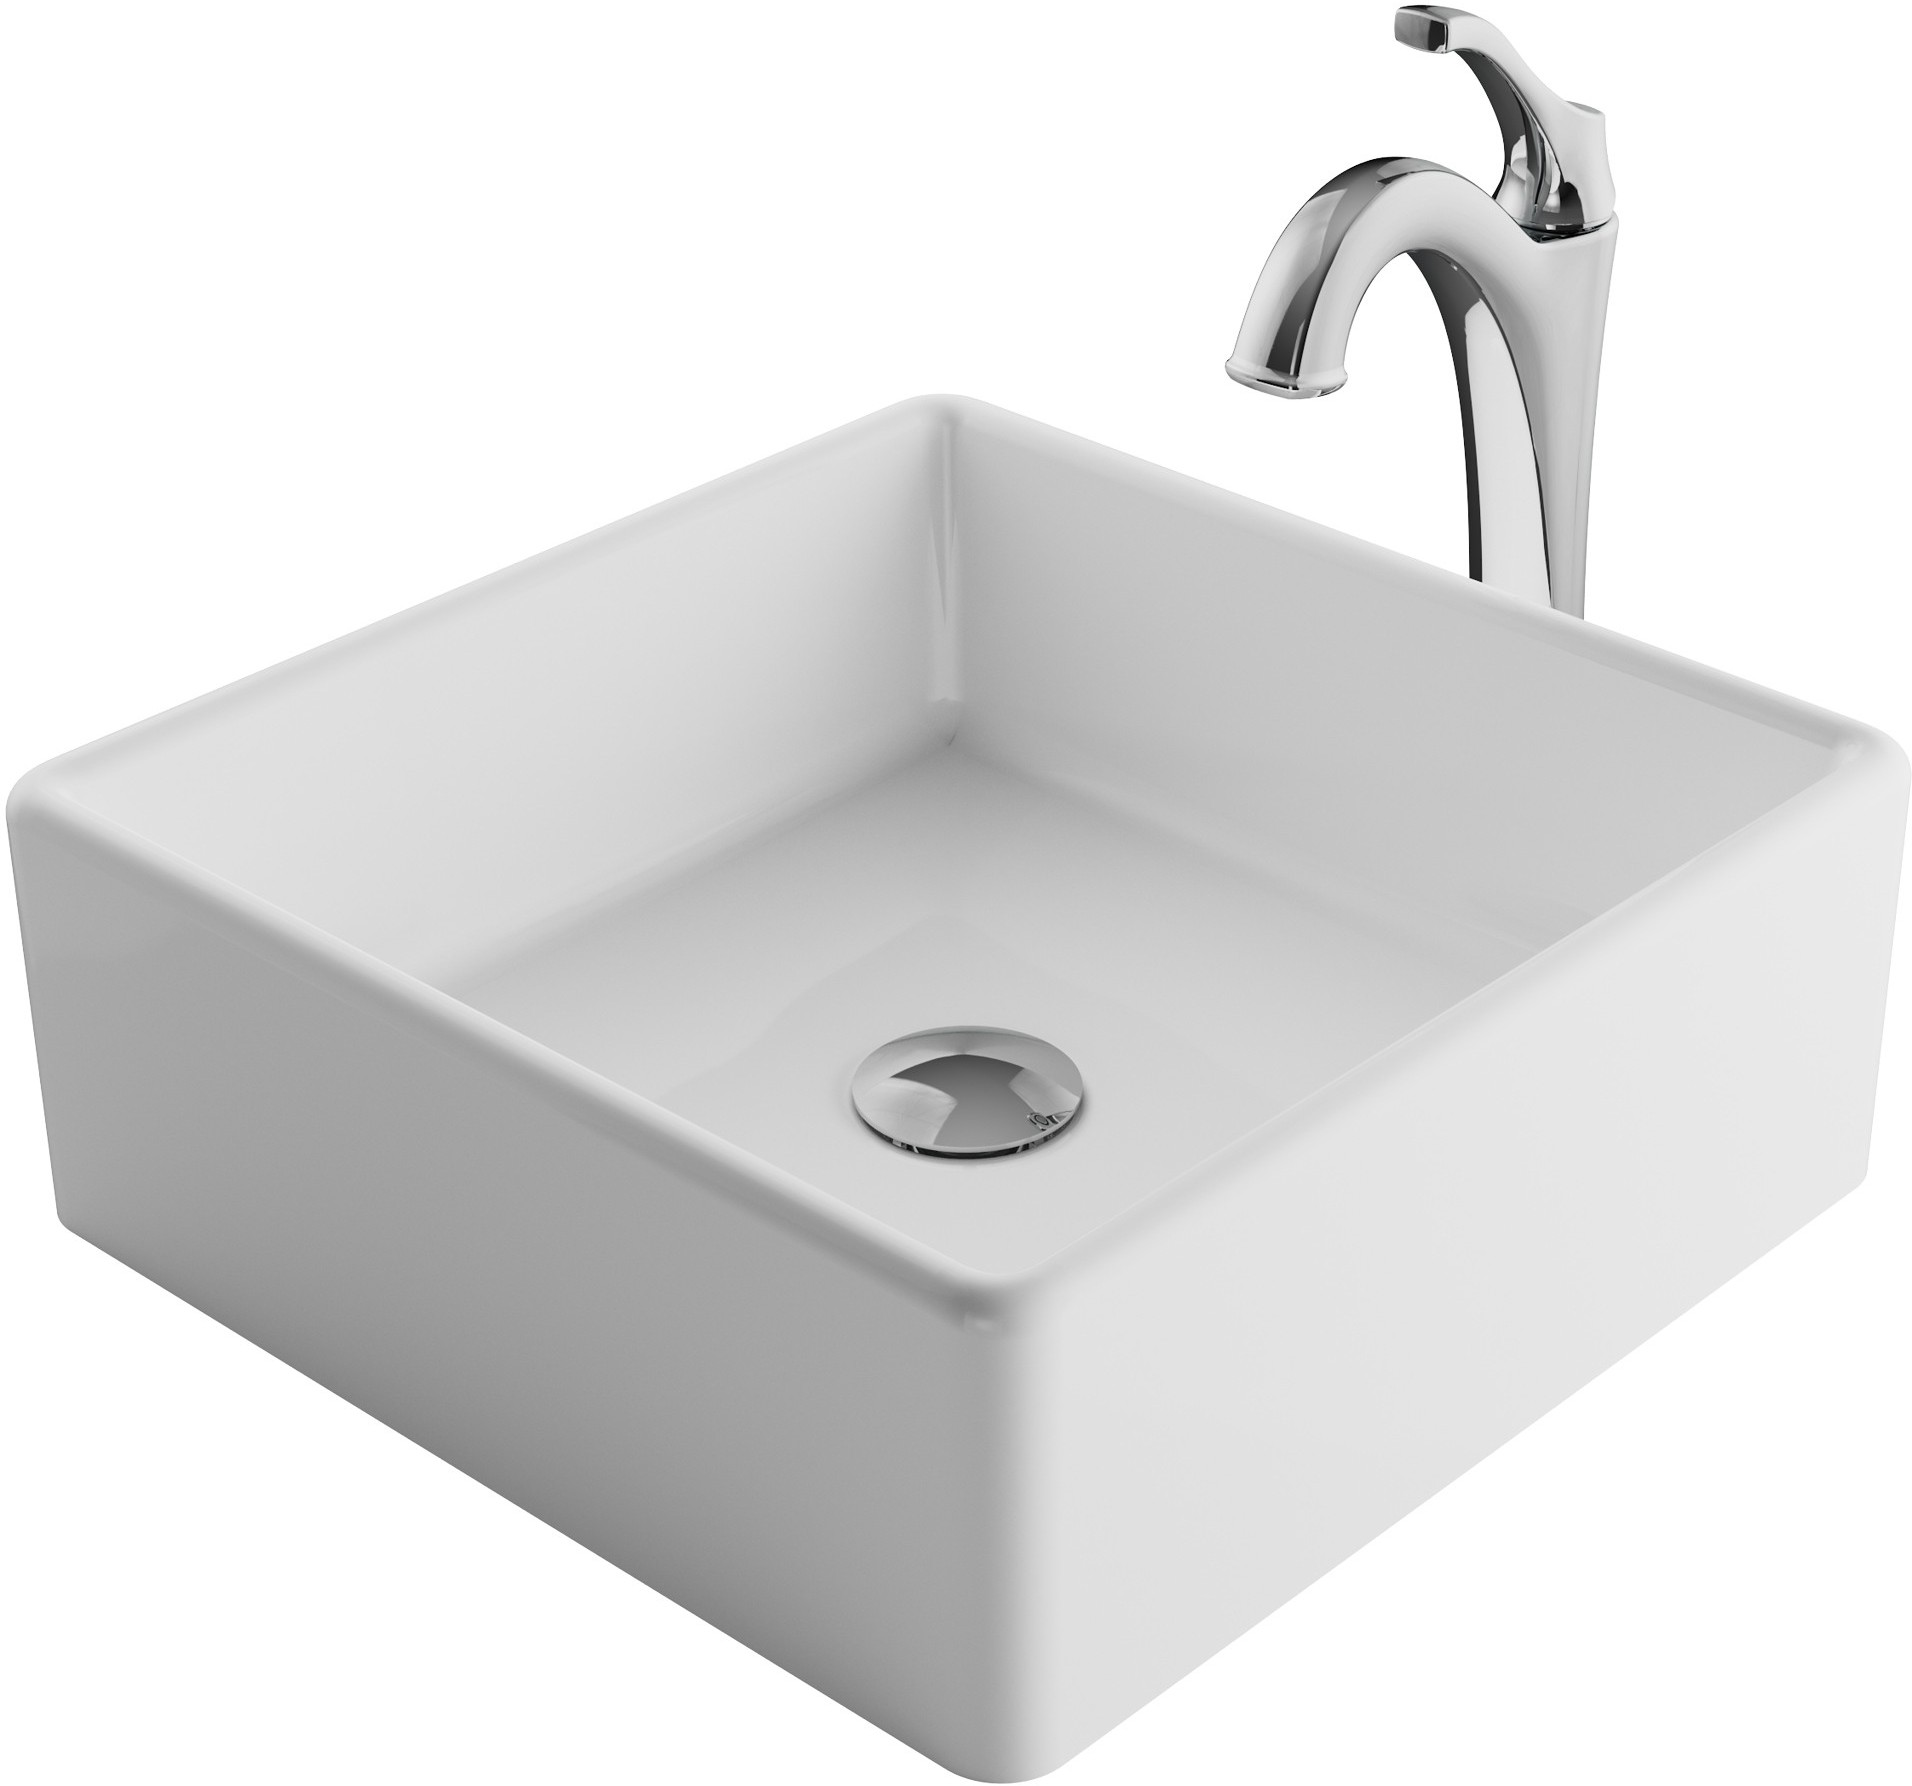 Image of Kraus Ceramic Sink & Faucet Combination CKCV1201200CH